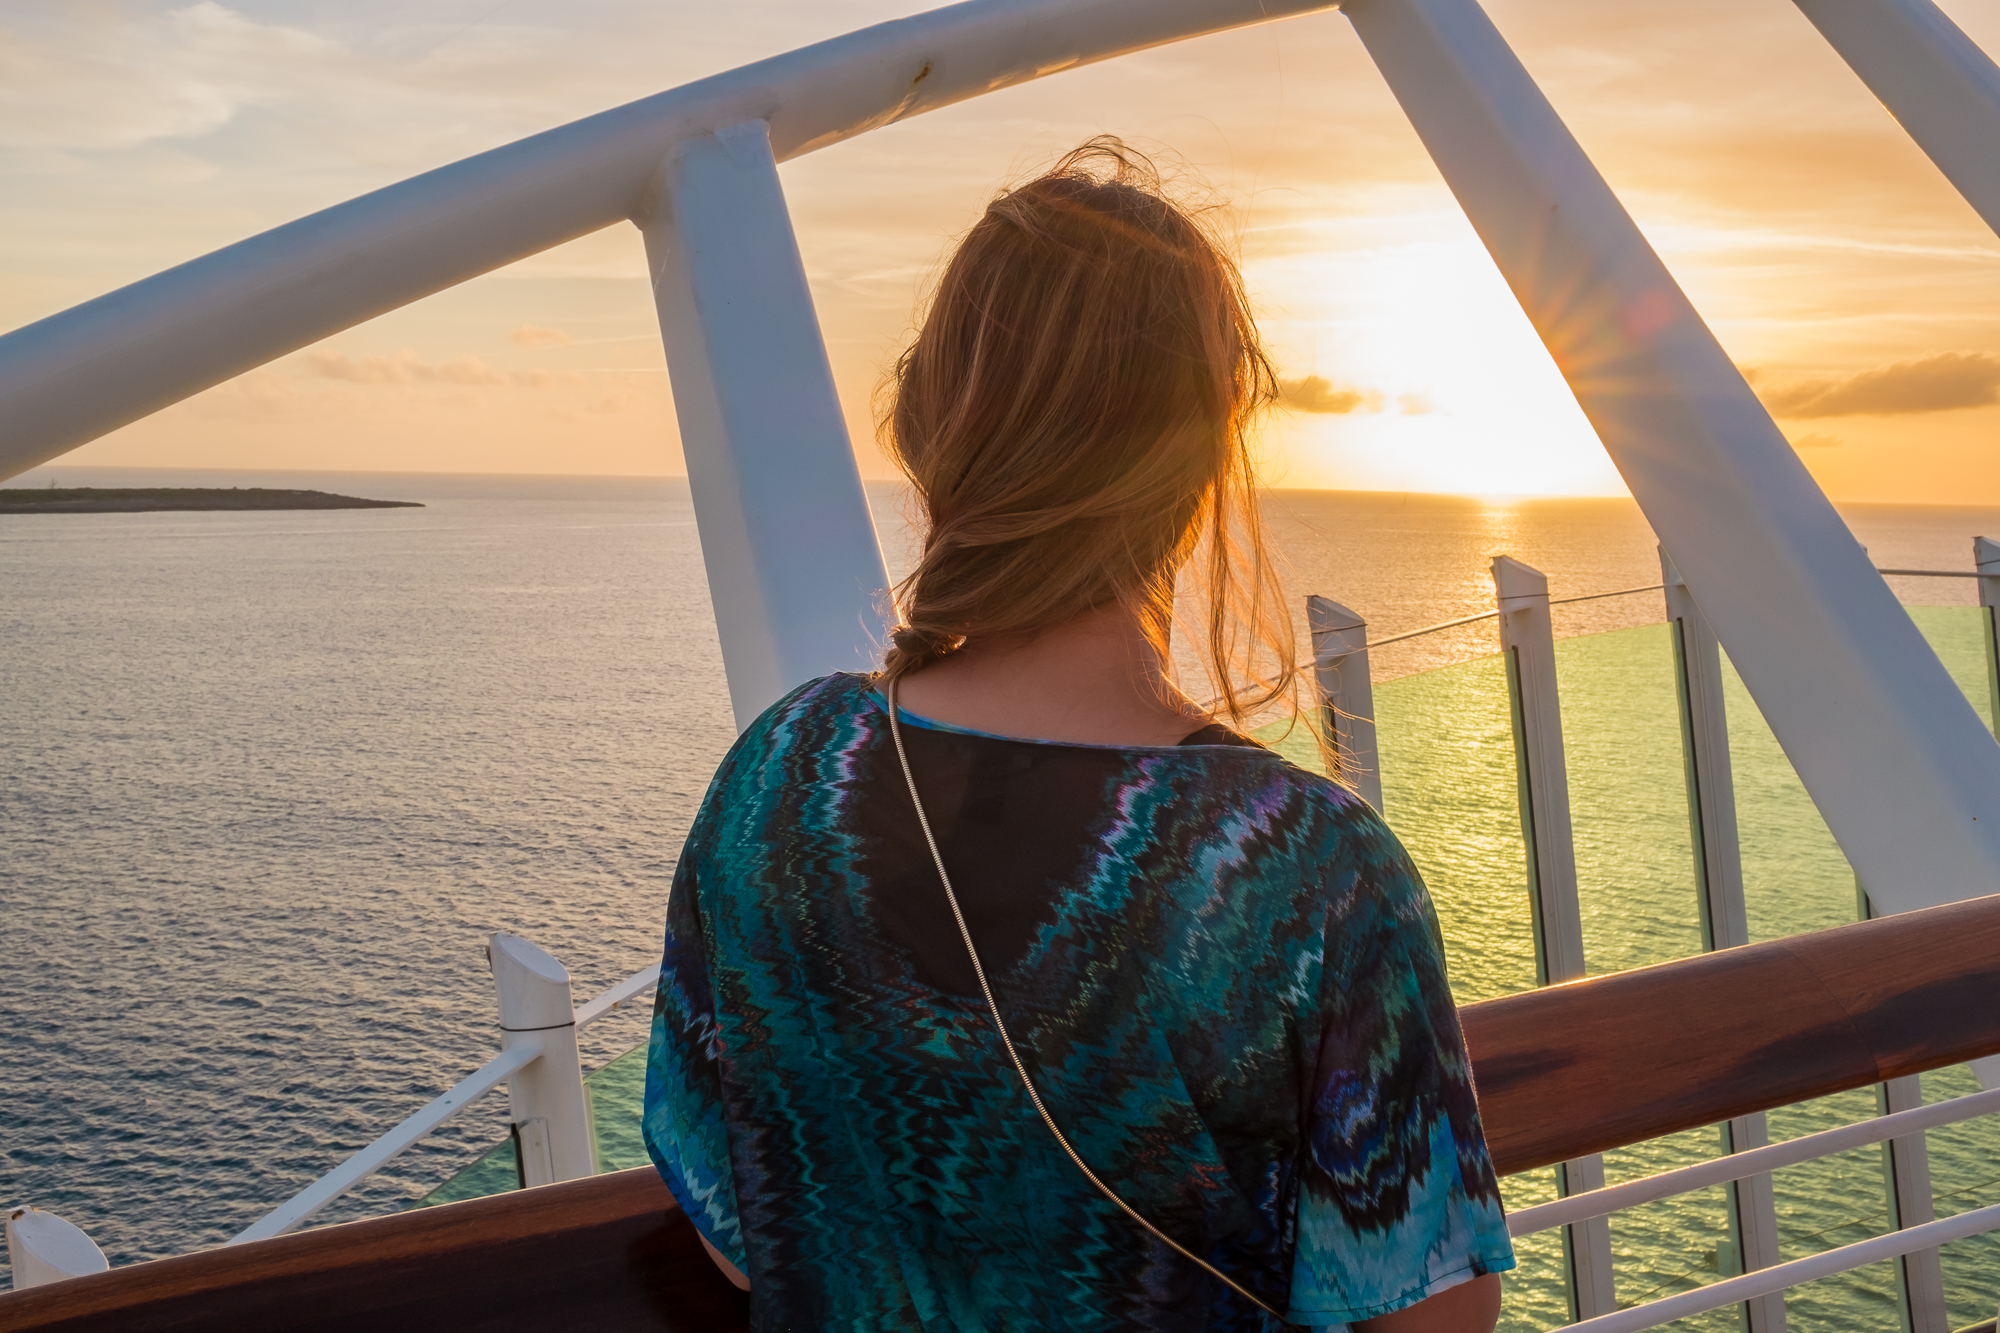 VIEWING THE LAST SUNSET ON THE CRUISE